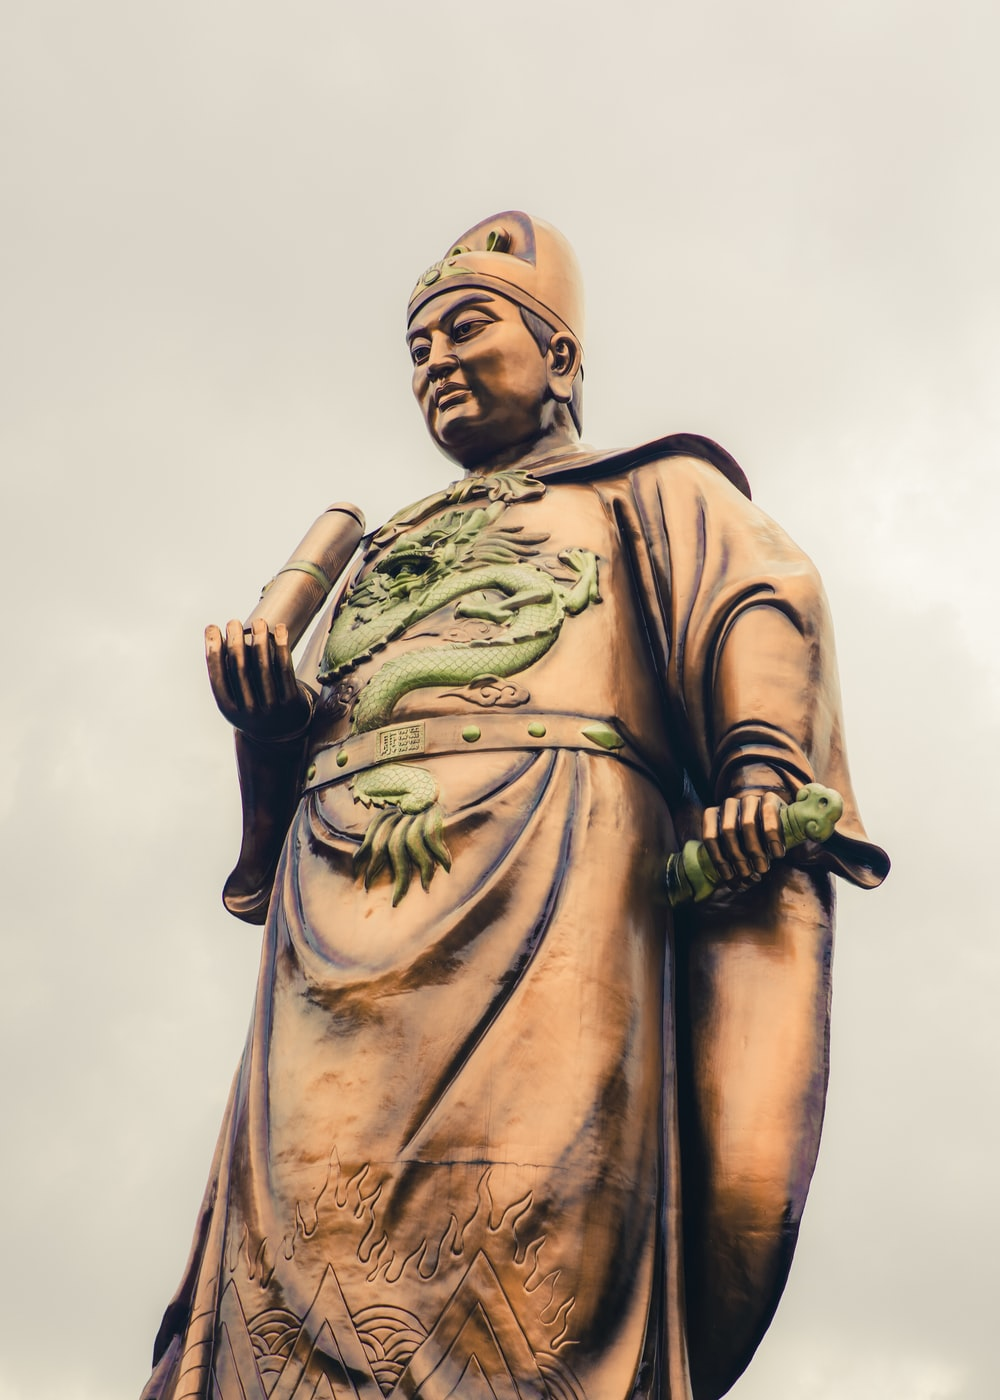 gold statue of man holding black and green stick